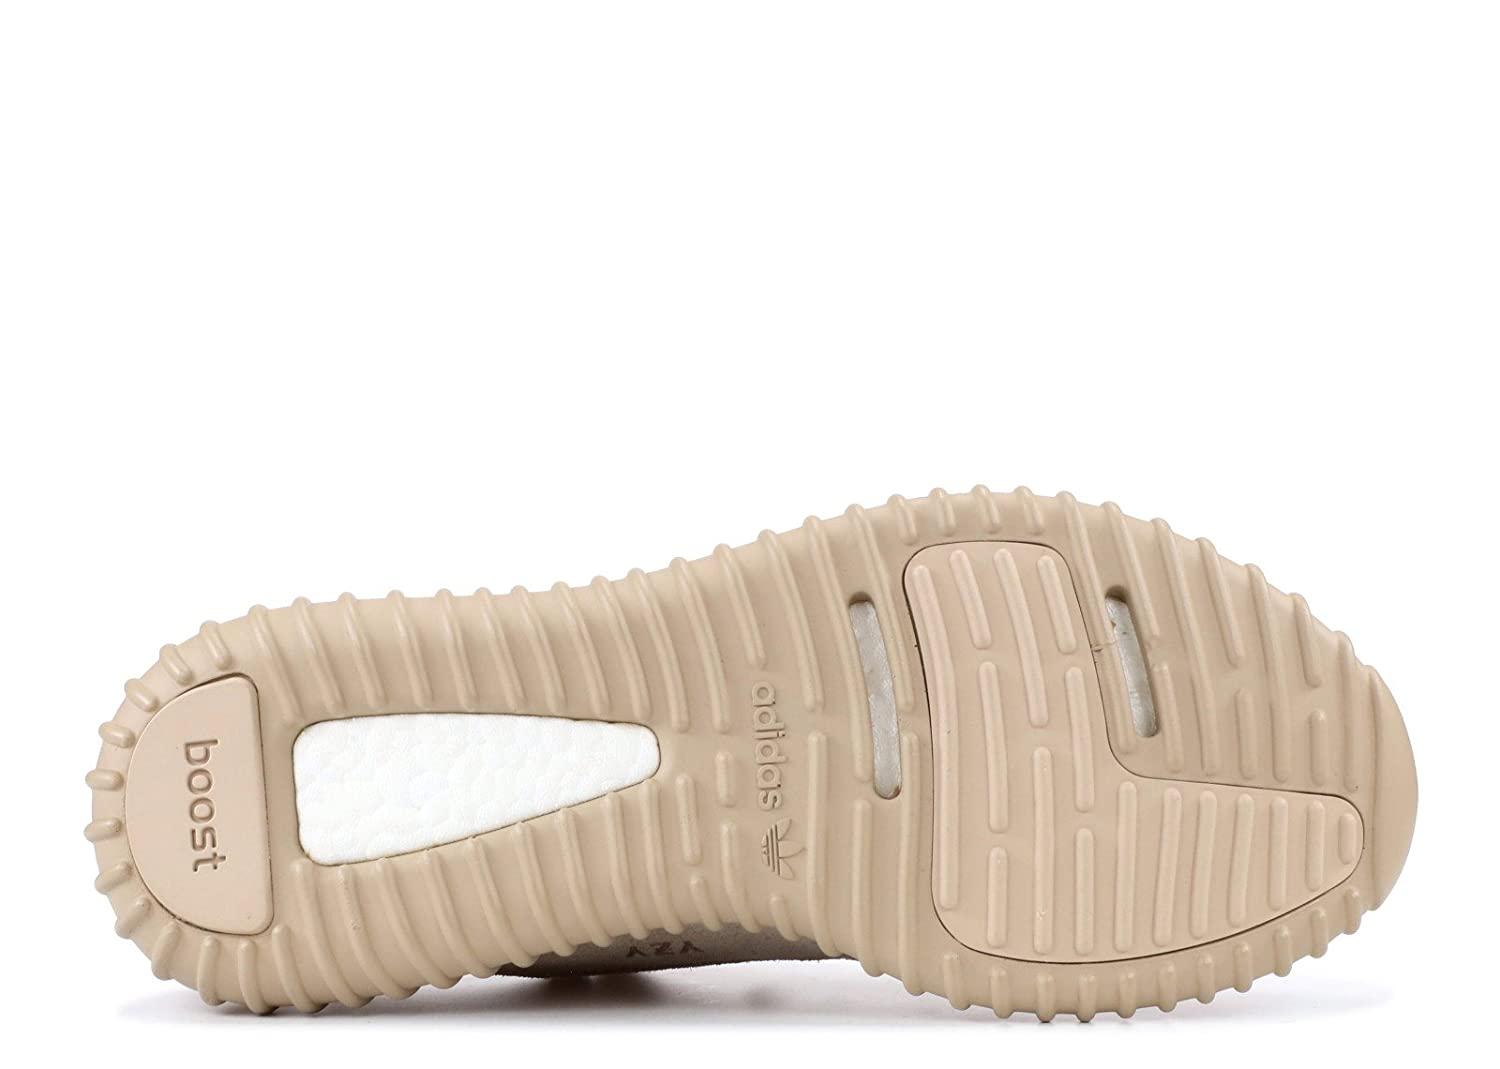 ff5f586032a ... wholesale yeezy boost 350 oxford tan aq2661 amazon shoes bags e7c1f  af4b4